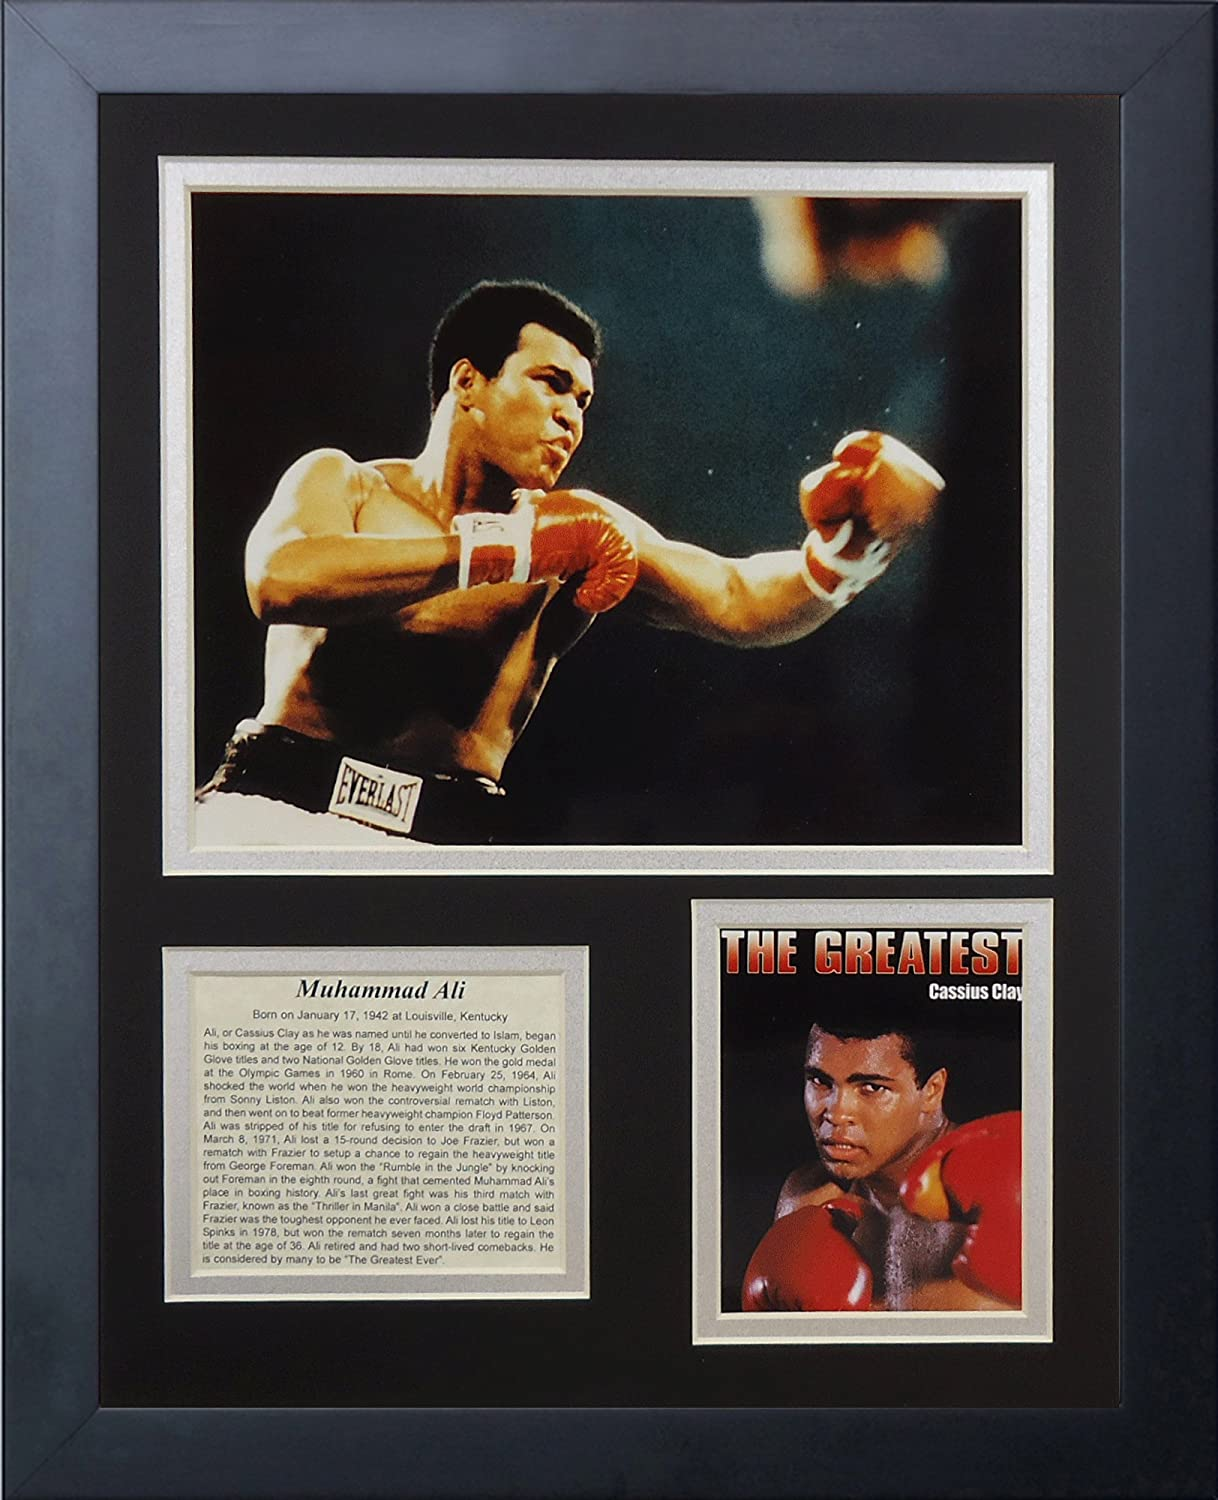 Legends Never Die Muhammad Ali Framed Photo Collage 11 by 14-Inch